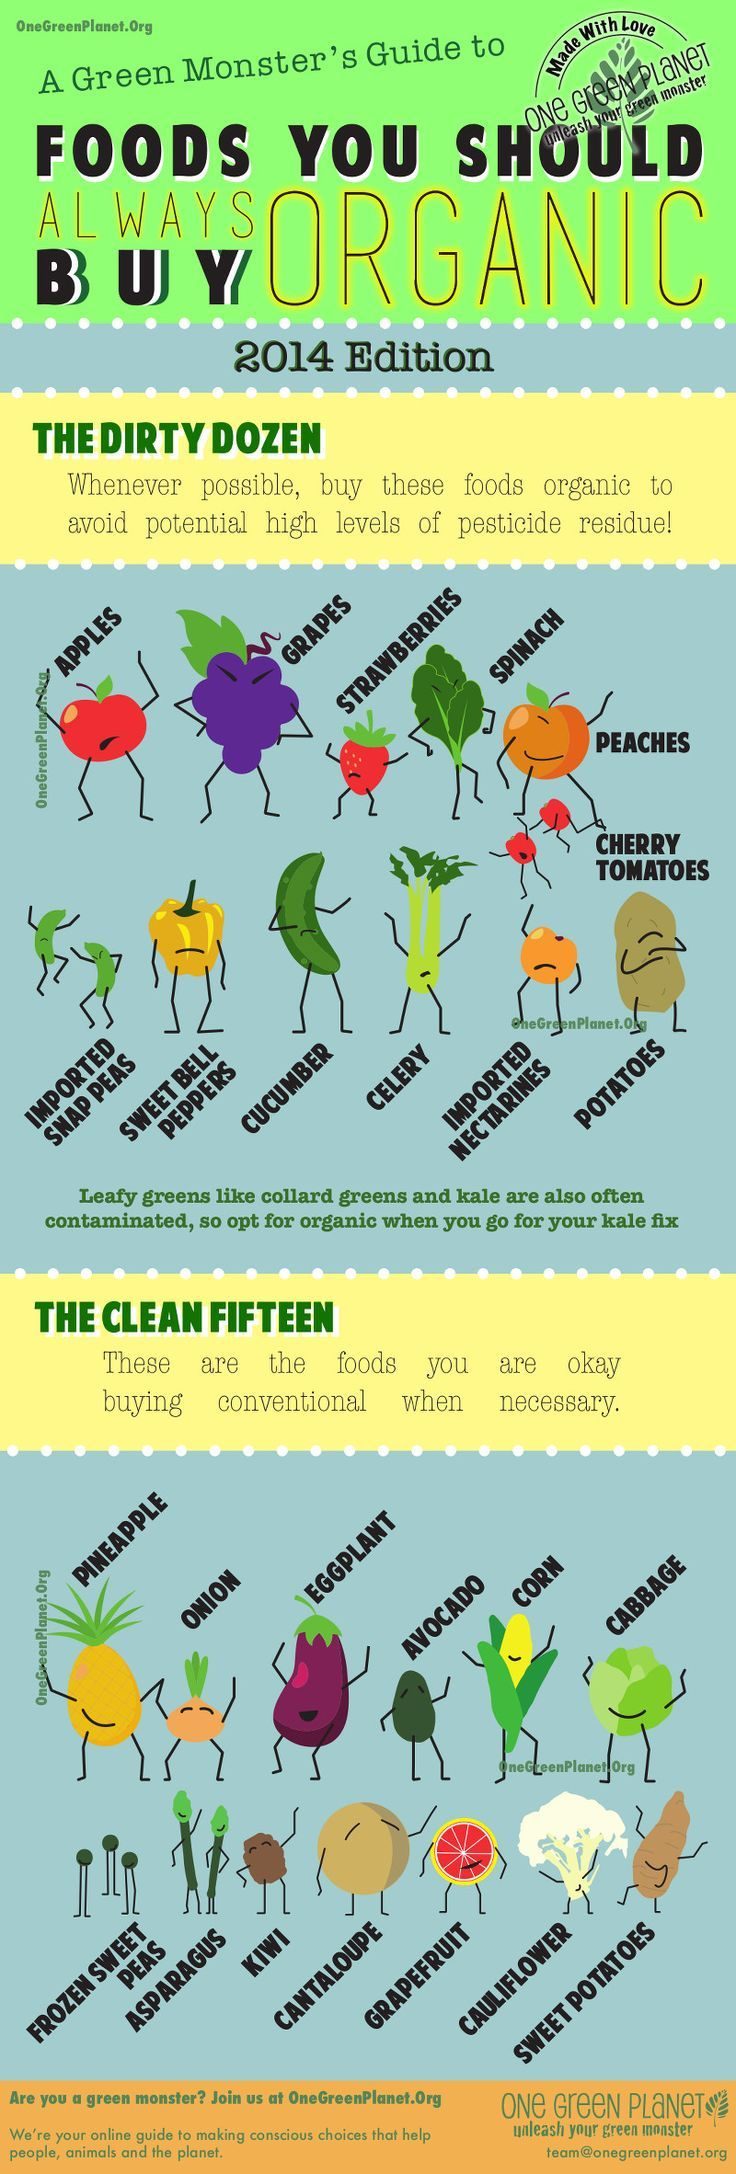 Foods You Should Buy Organic in 2014 by onegreen planet: Whether you always opt for organic or buy certain kinds of conventional produce. you have the right to know about the levels of pesticides used to grow these foods. and you also have a right to know the risks involved.